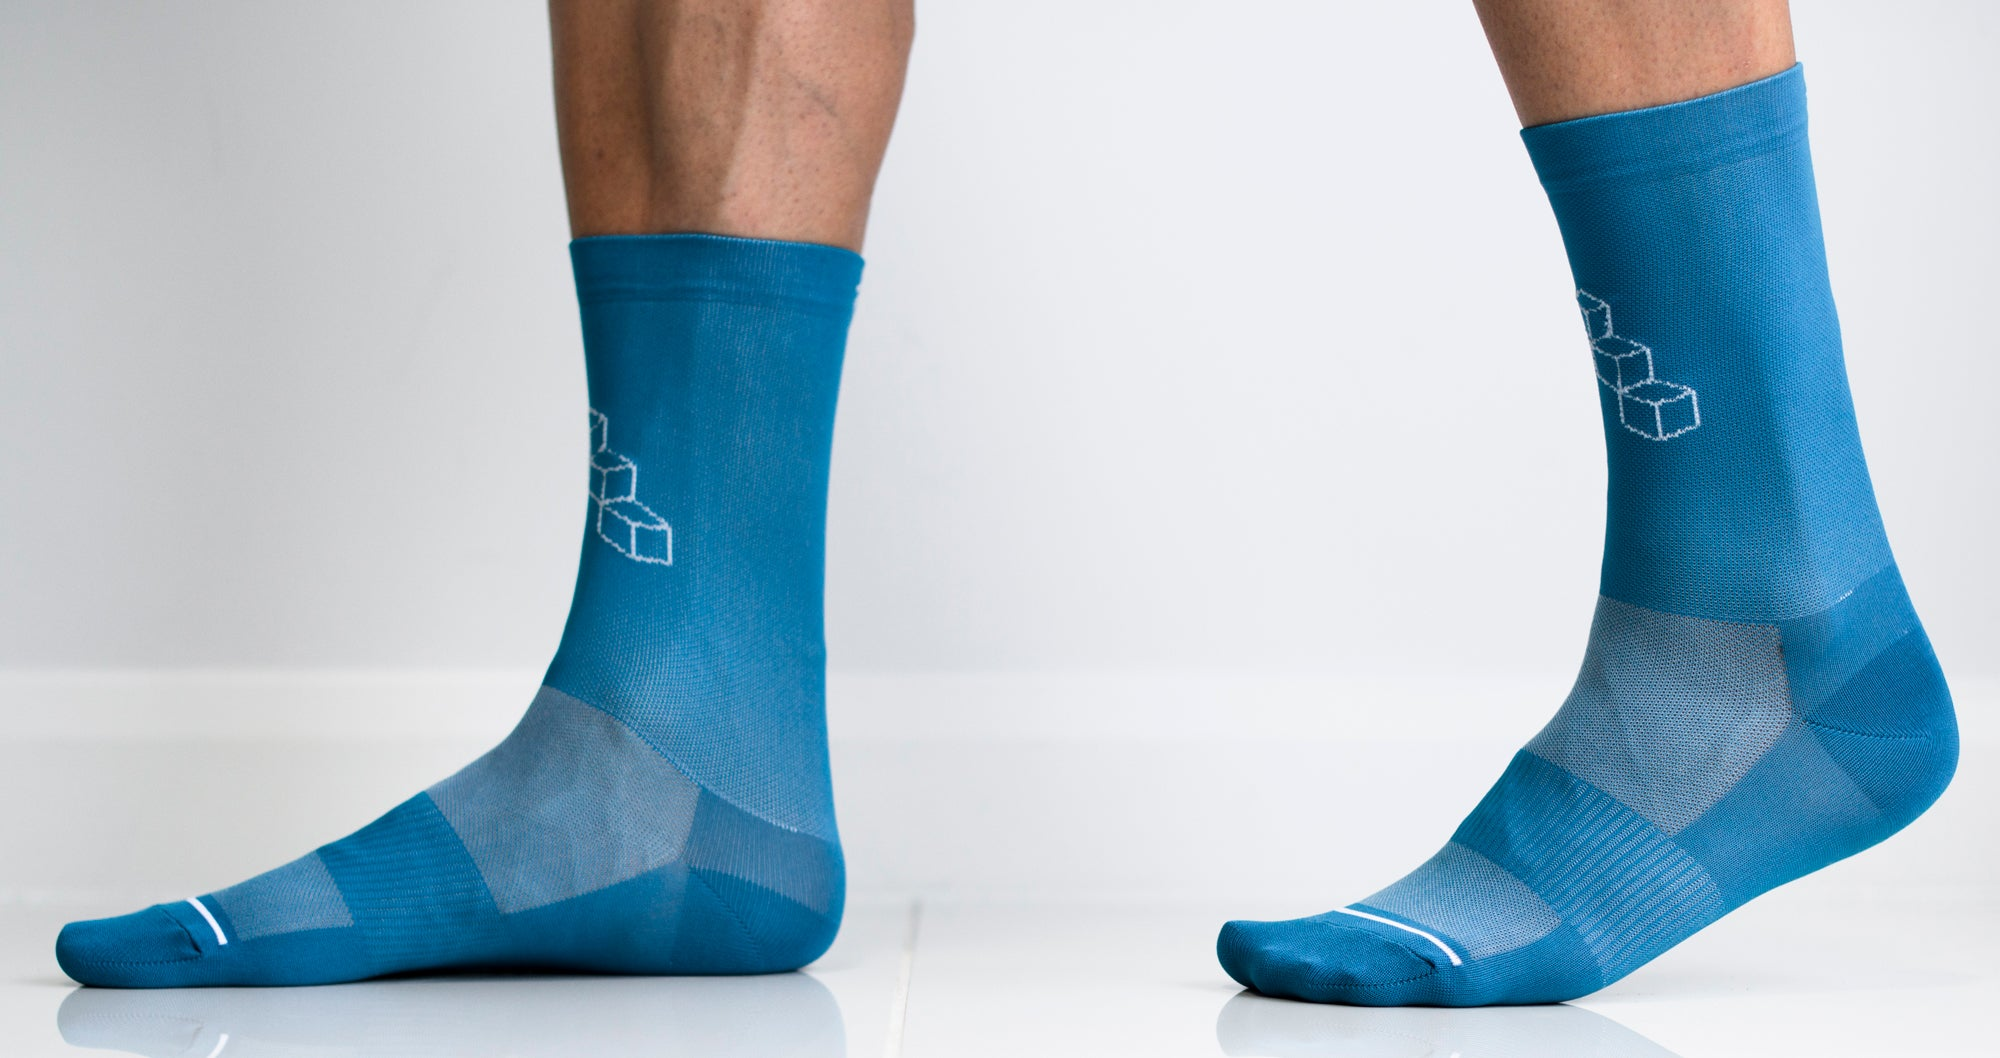 Turq blue cycling sock on sale.